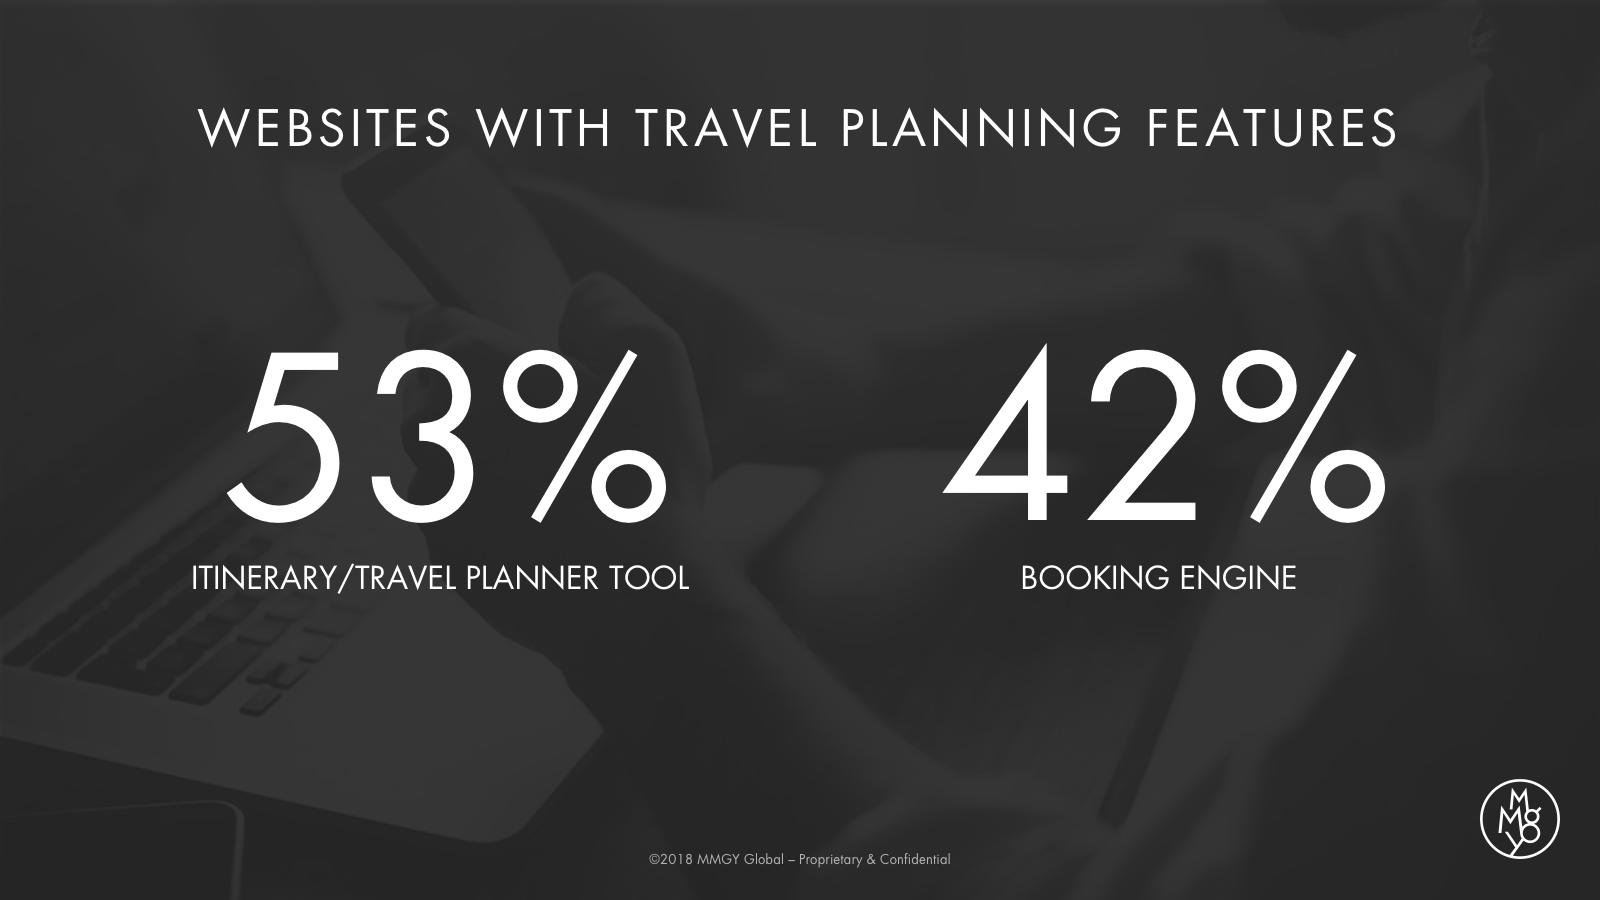 Websites with Travel Planning Features Statistics